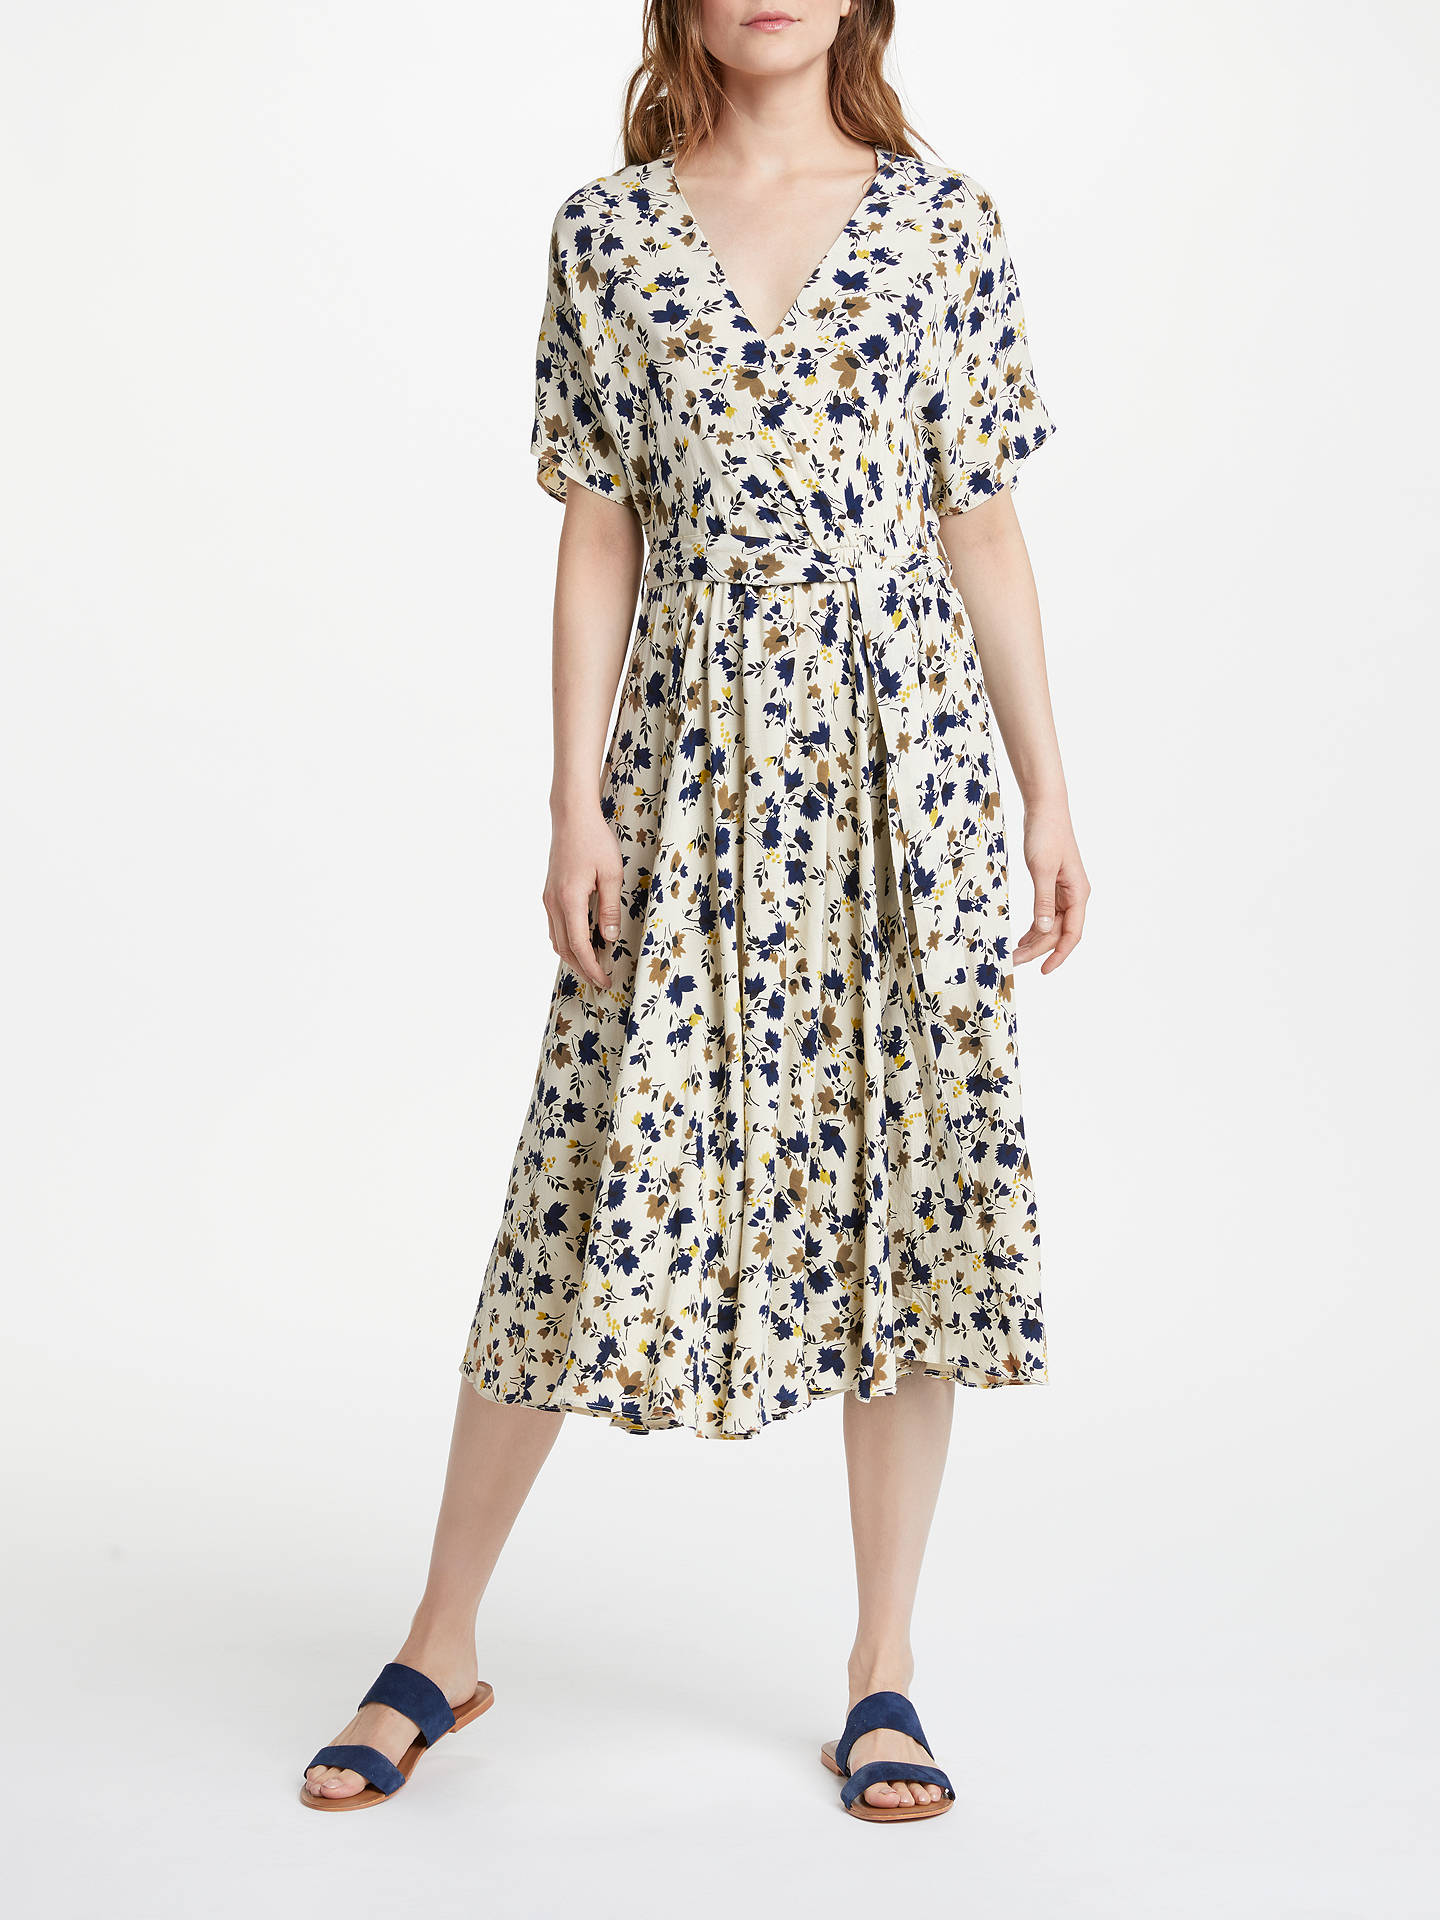 Stella Forest Ete 2018 stella forest coquelicot dress, multi at john lewis & partners